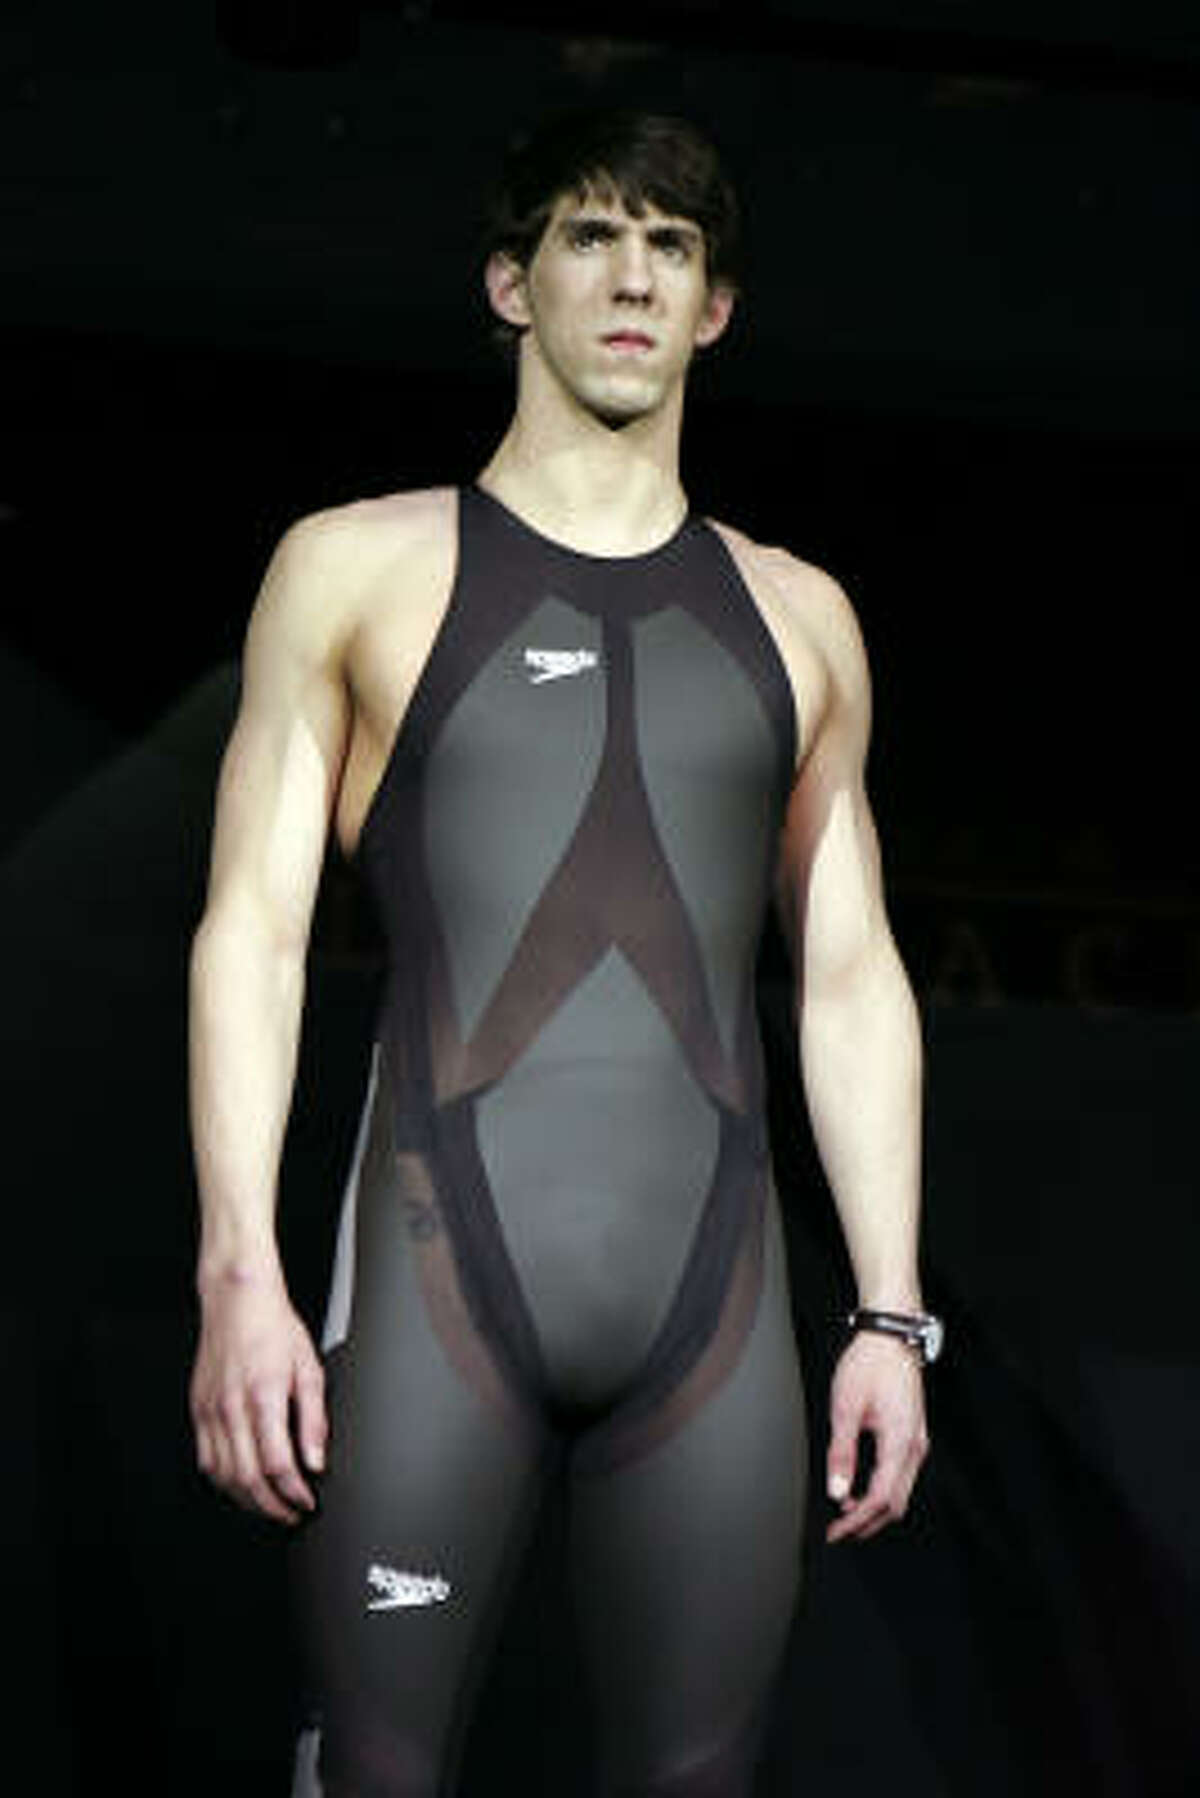 Michael Phelps' swimsuit  Space exploration and swimming have some similarities, such as reducing drag. A NASA expert on the subject helped design a state-of-the-art swimsuit for the Olympian.